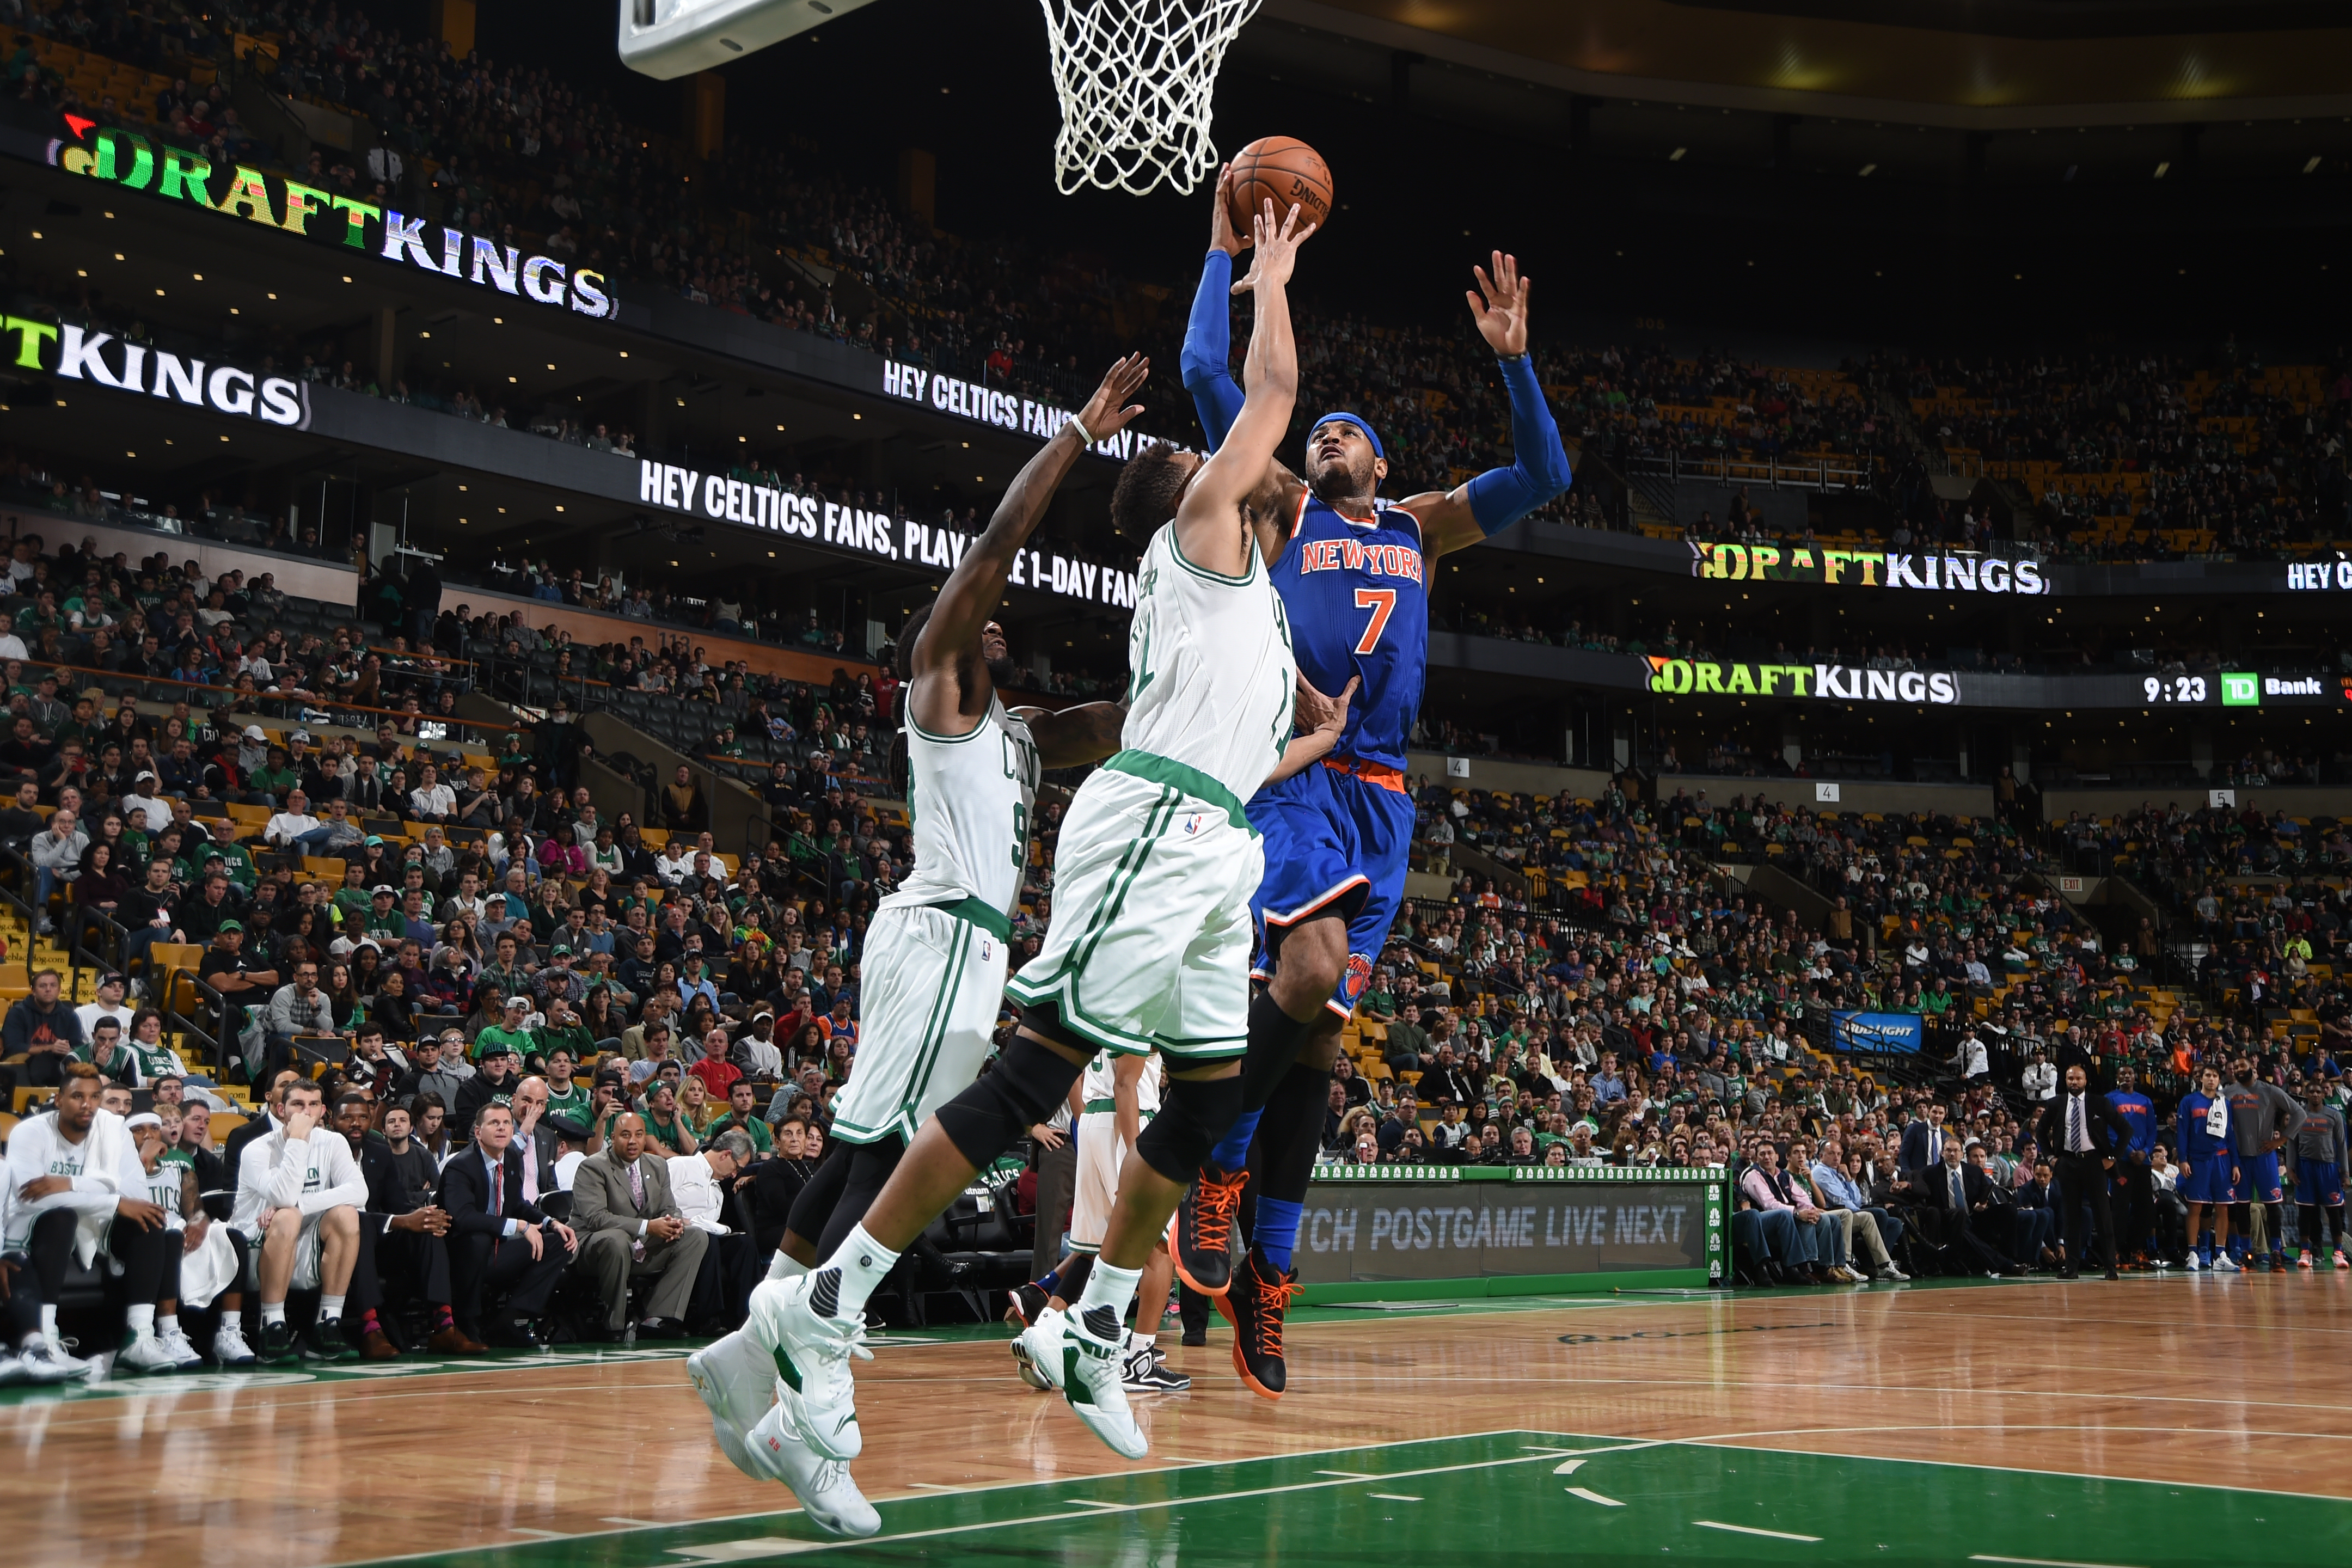 BOSTON, MA - DECEMBER 27:  Carmelo Anthony #7 of the New York Knicks goes to the basket against the Boston Celtics on December 27, 2015 at the TD Garden in Boston, Massachusetts.  (Photo by Brian Babineau/NBAE via Getty Images)